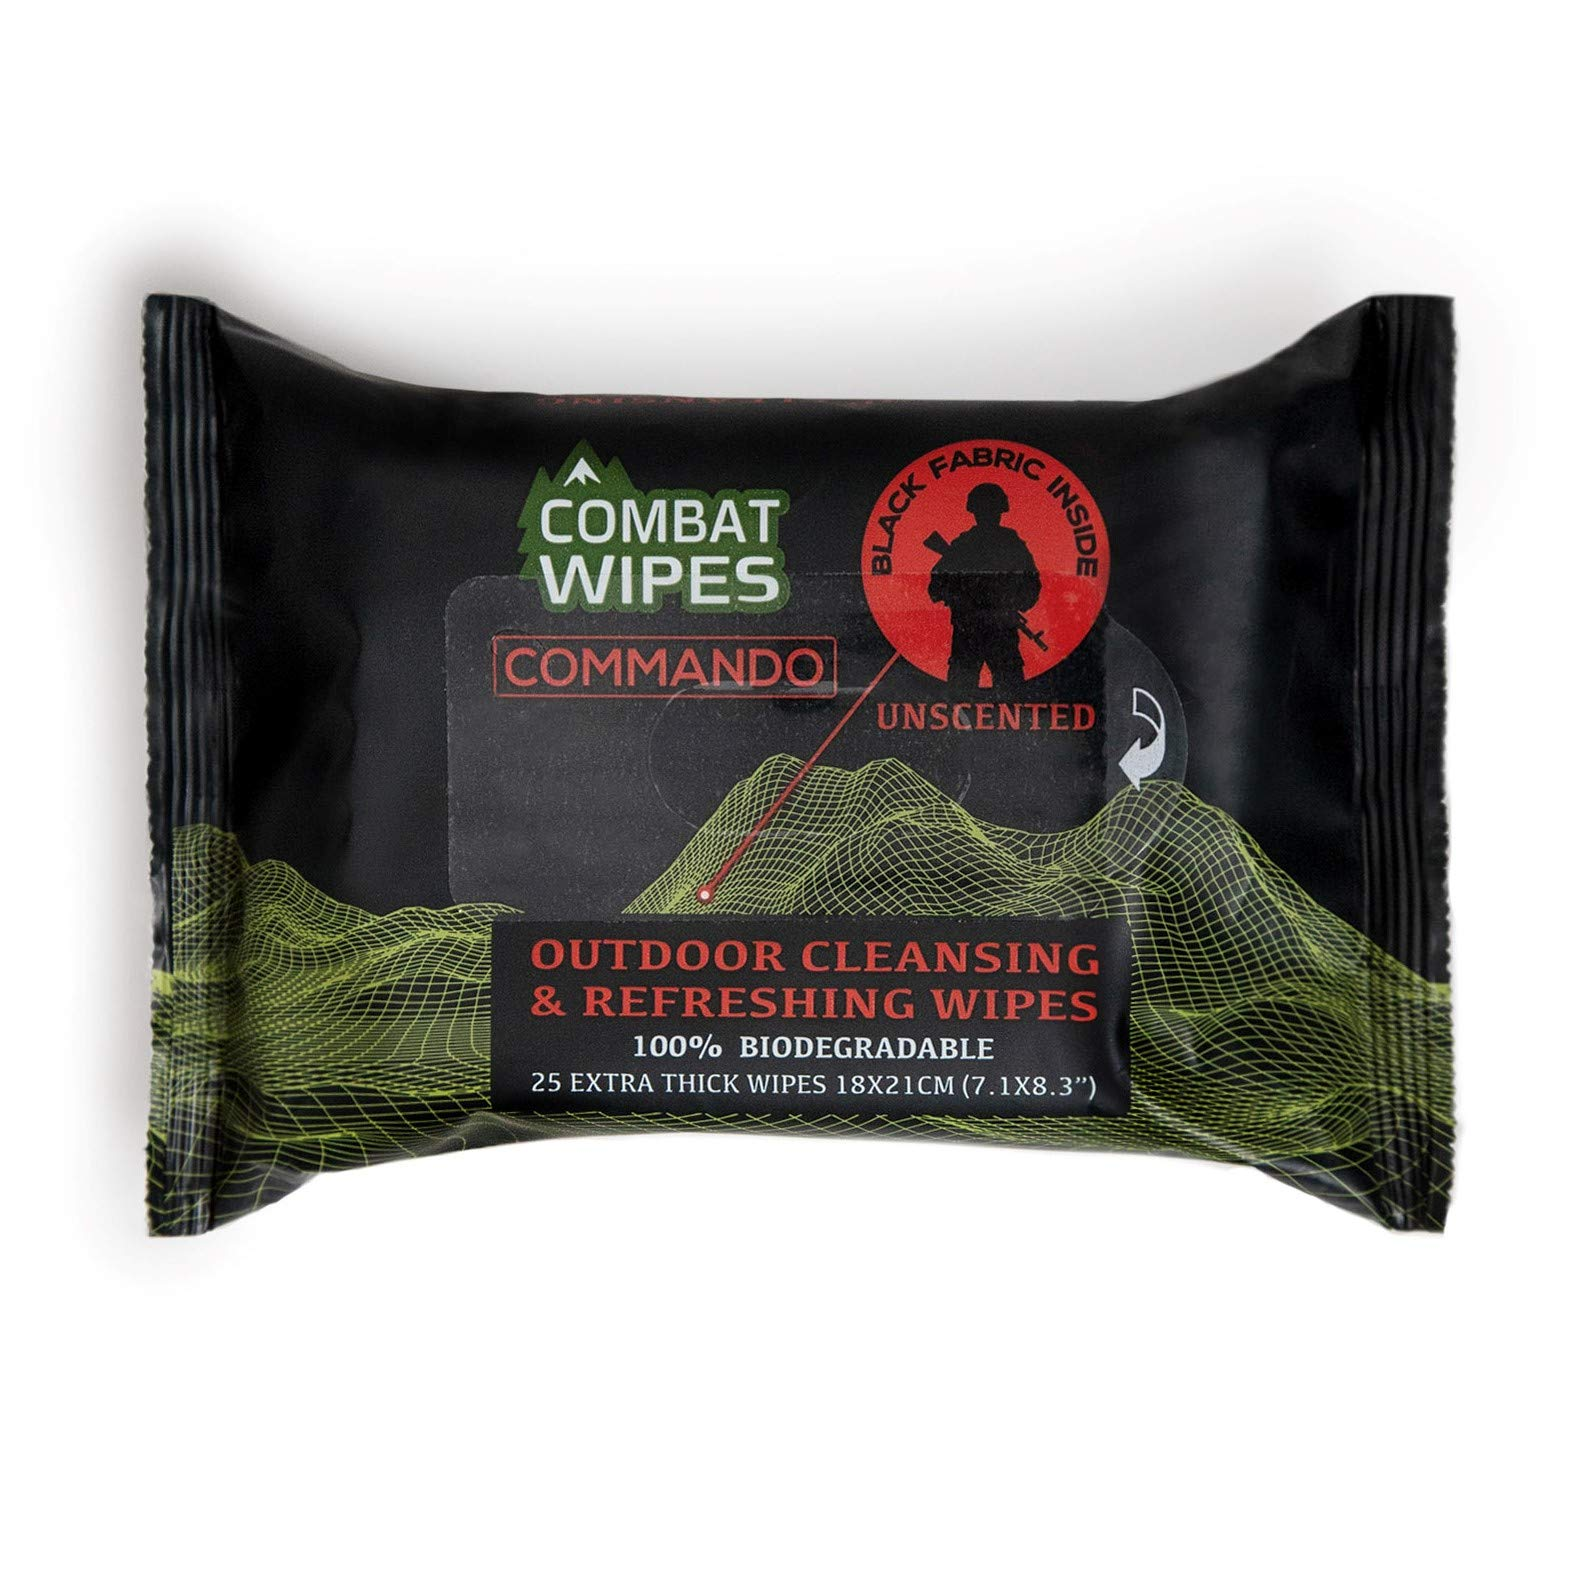 Combat Wipes Commando Black, Unscented Camouflage Wet Wipes   Thick, Ultralight, Biodegradable, Heavy Duty Cleansing Cloths for Camping, Military, Hunting & Backpacking w/Aloe & Vitamin E (25 Pack)